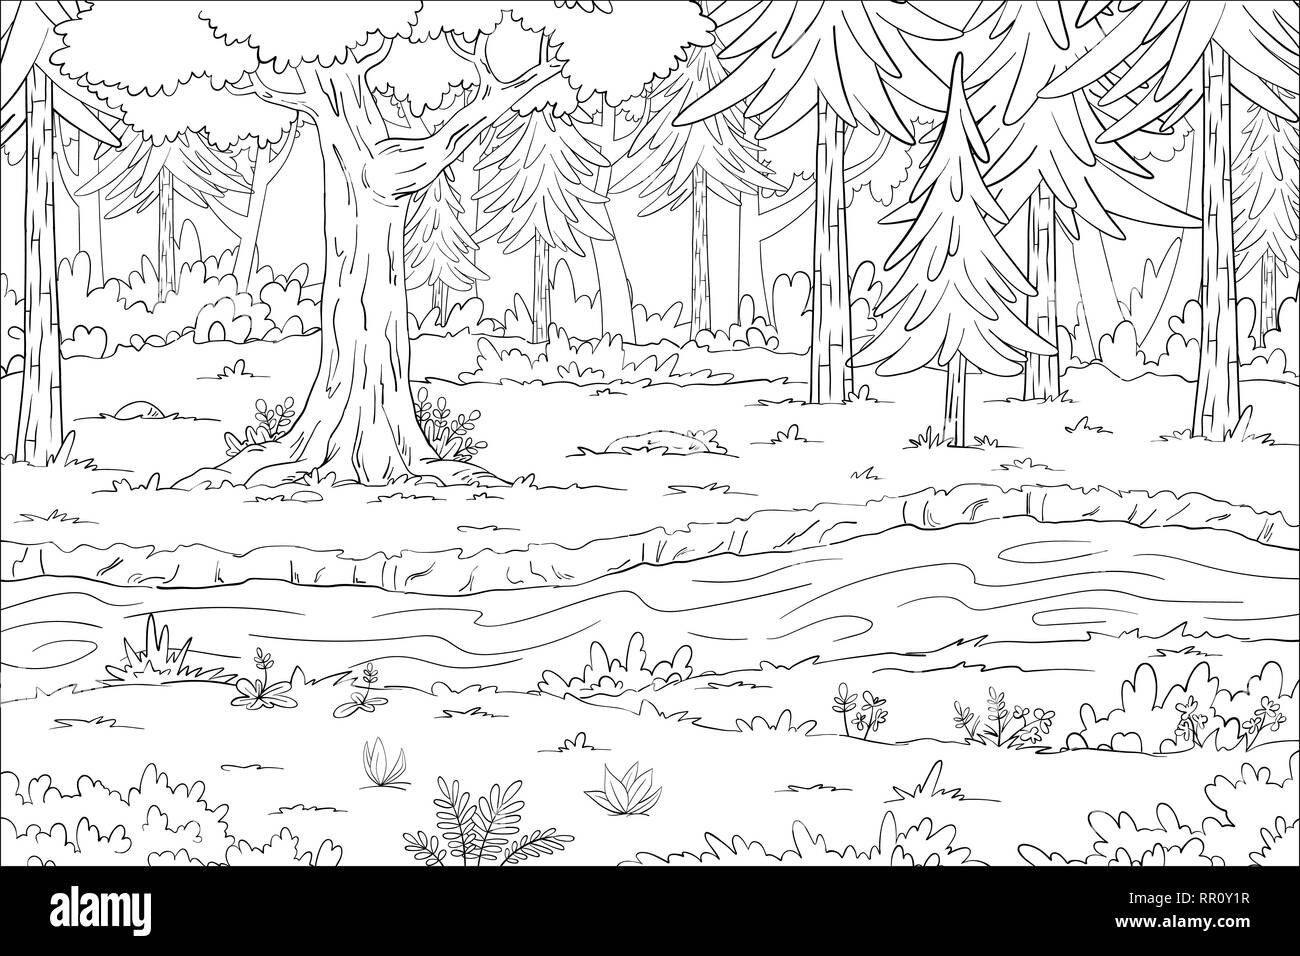 Coloring book landscape. Hand draw vector illustration with separate ...